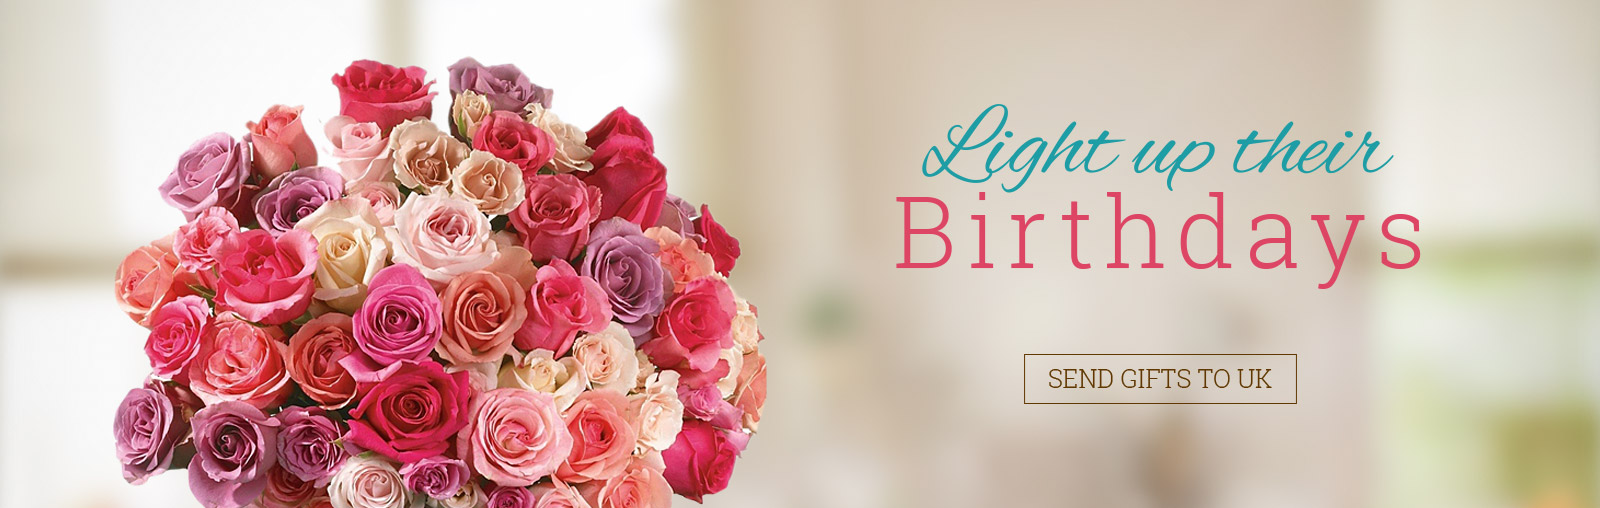 Wedding Gift Ideas Next Day Delivery : Send Gifts To UK Same Day Gift Delivery UK Ferns N Petals Birthday ...